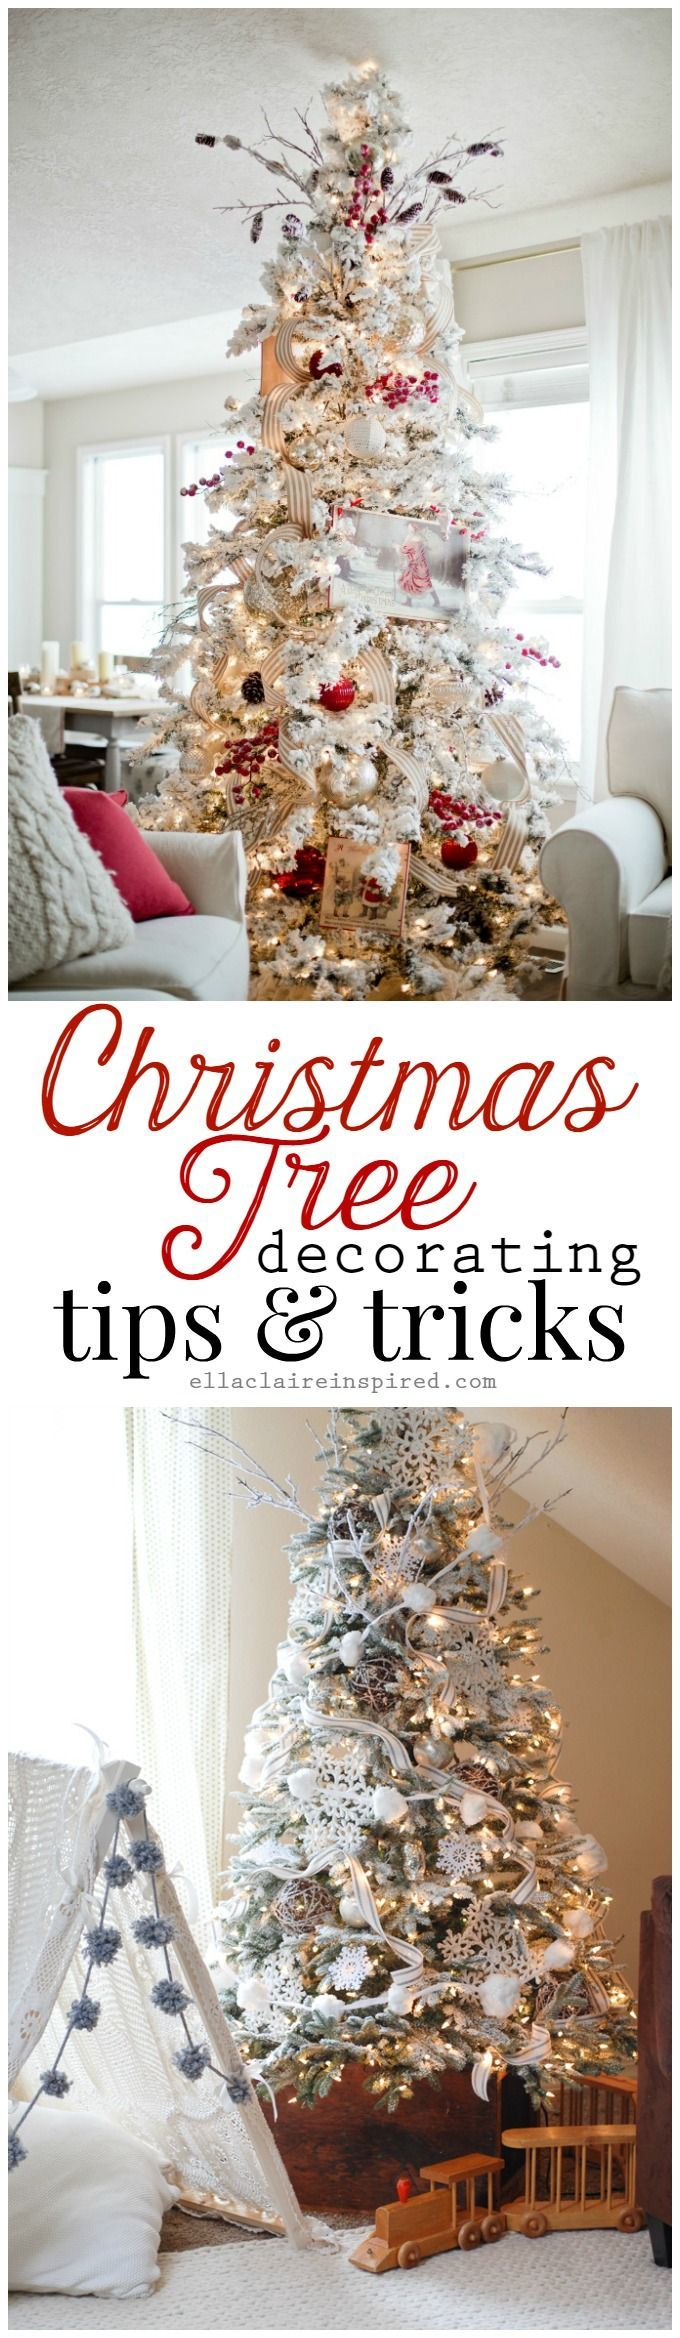 The best tips and tricks to create a gorgeous Christmas tree for your home this holiday season! It is easier than you think to have a more professional looking tree. Find the details at ellaclaireinspired.com: